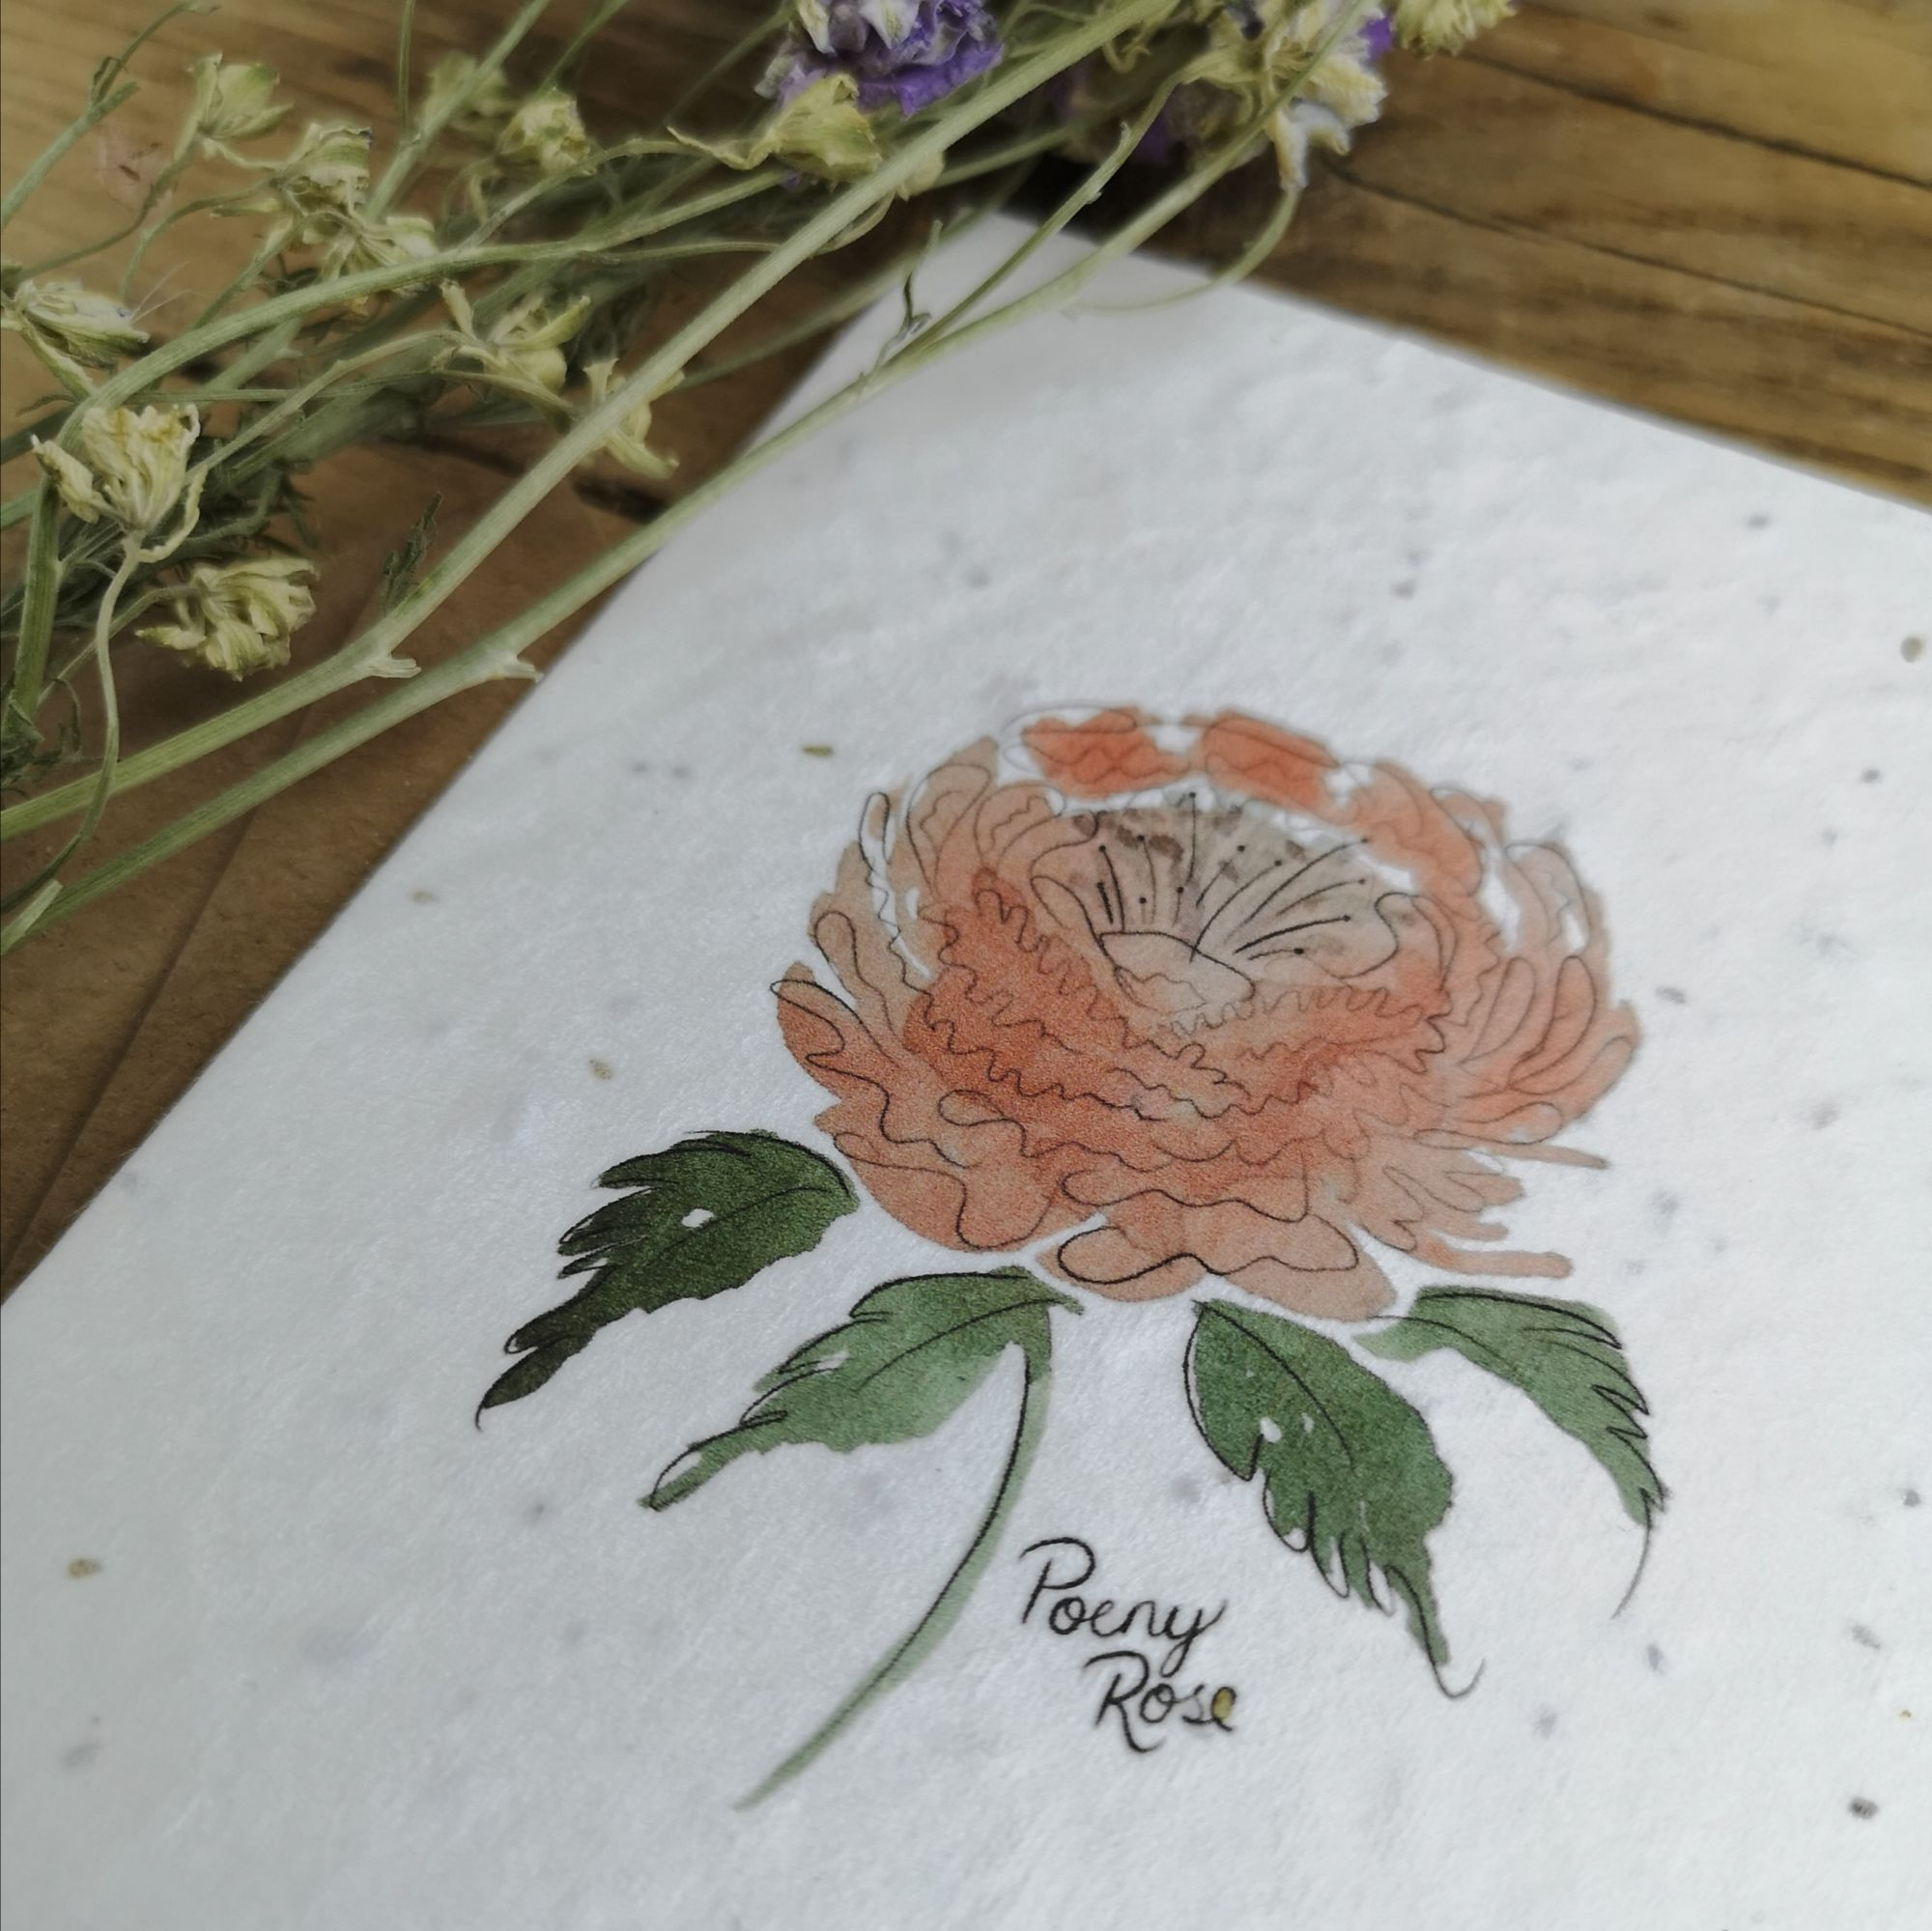 Watercolour Poeny on Seed Paper